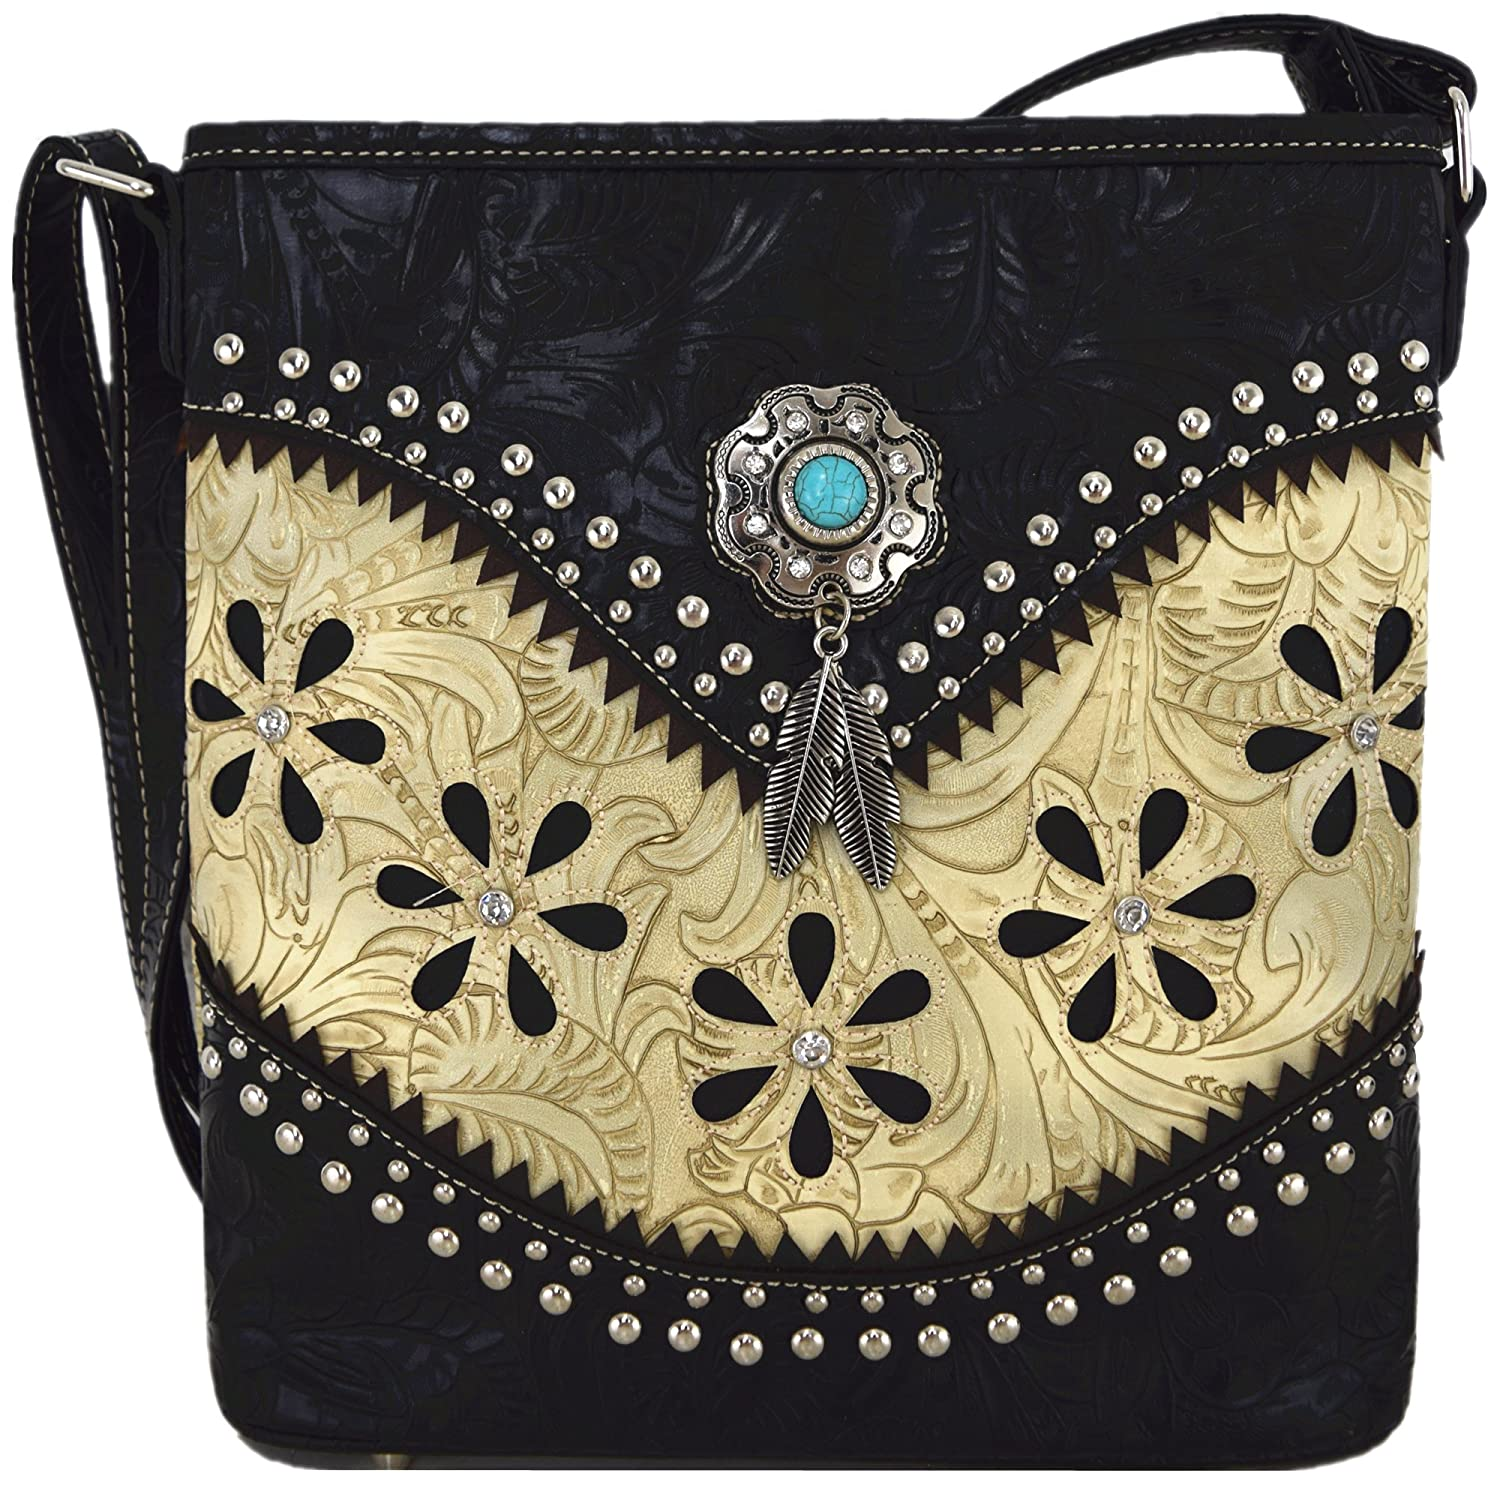 f7a491a4f721 Western Style Tooled Leather Cross Body Handbags Concealed Carry Purse  Women Country Single Shoulder Bag